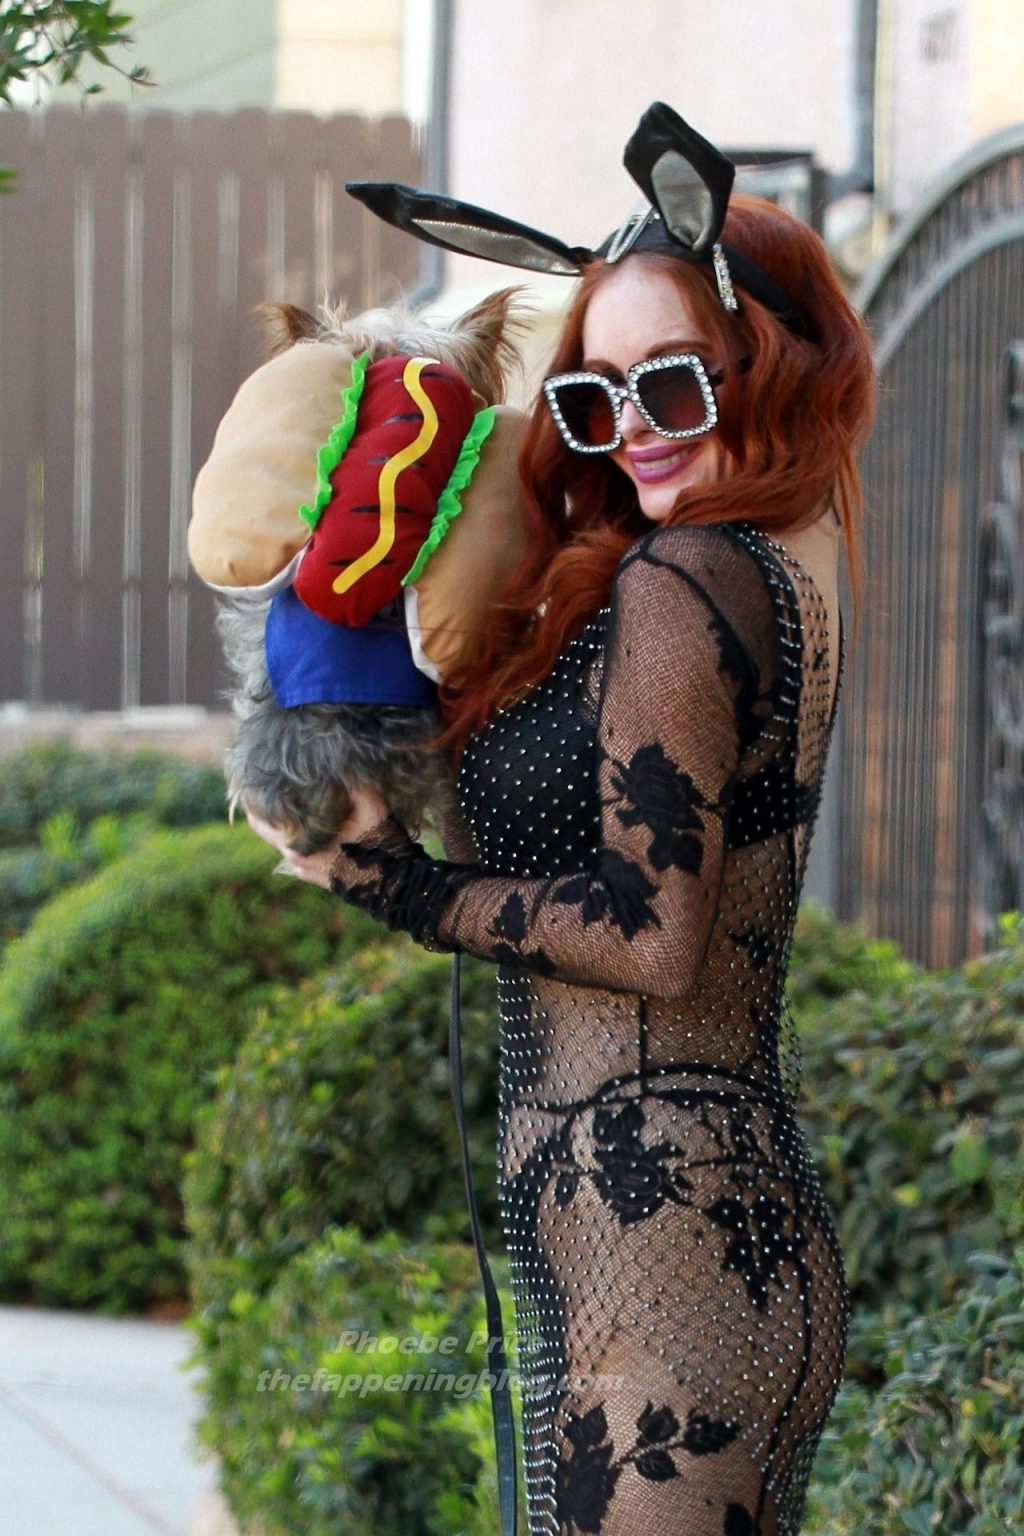 Phoebe Price Walks Her Dog in a Sexy Bunny Outfit ahead of Halloween (27 Photos)